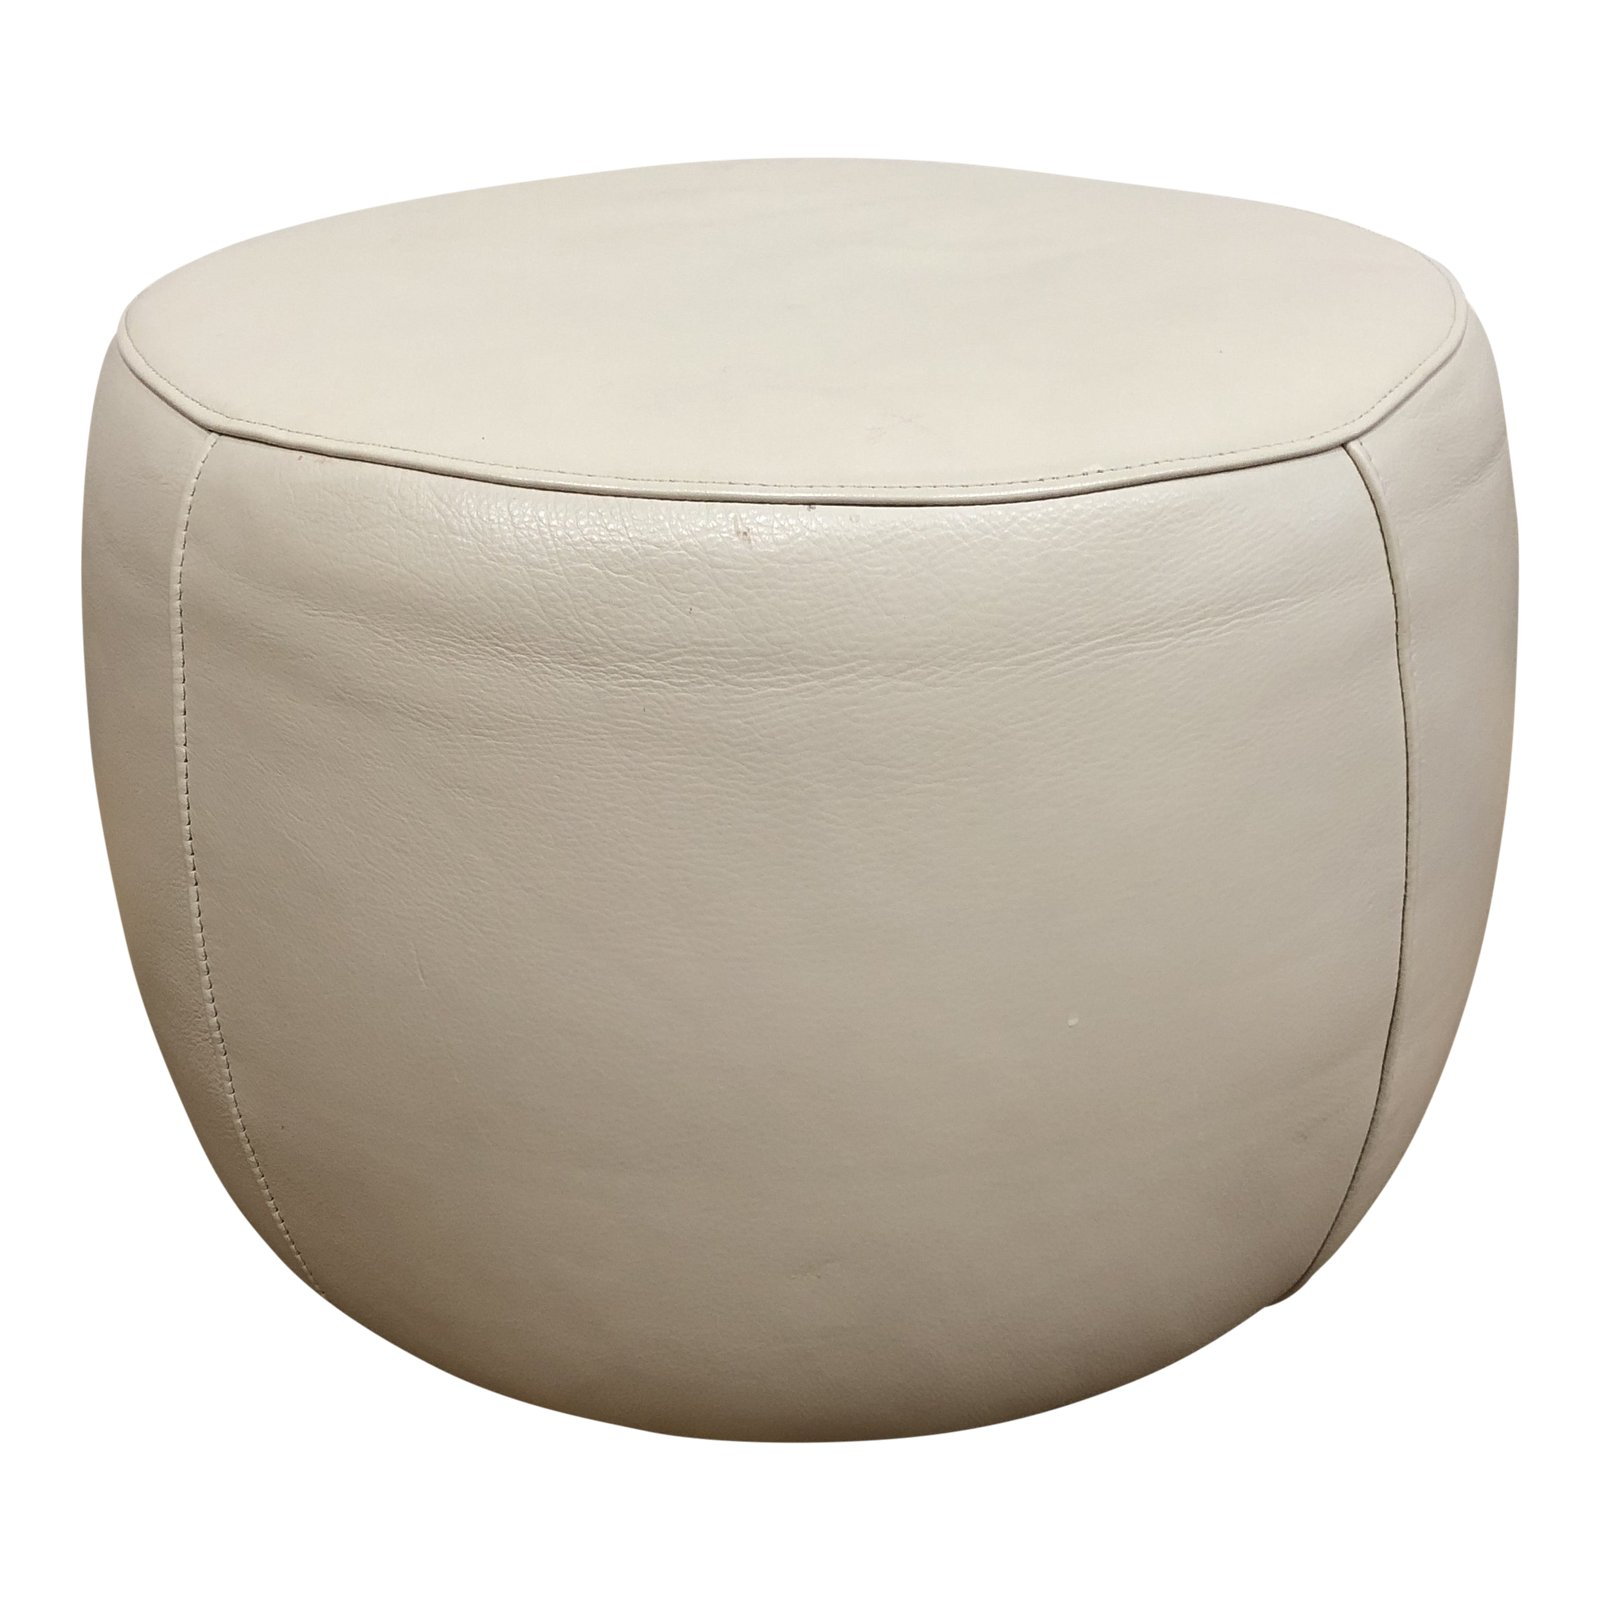 Room & Board Lind Round Leather Ottoman. Original Price: $4